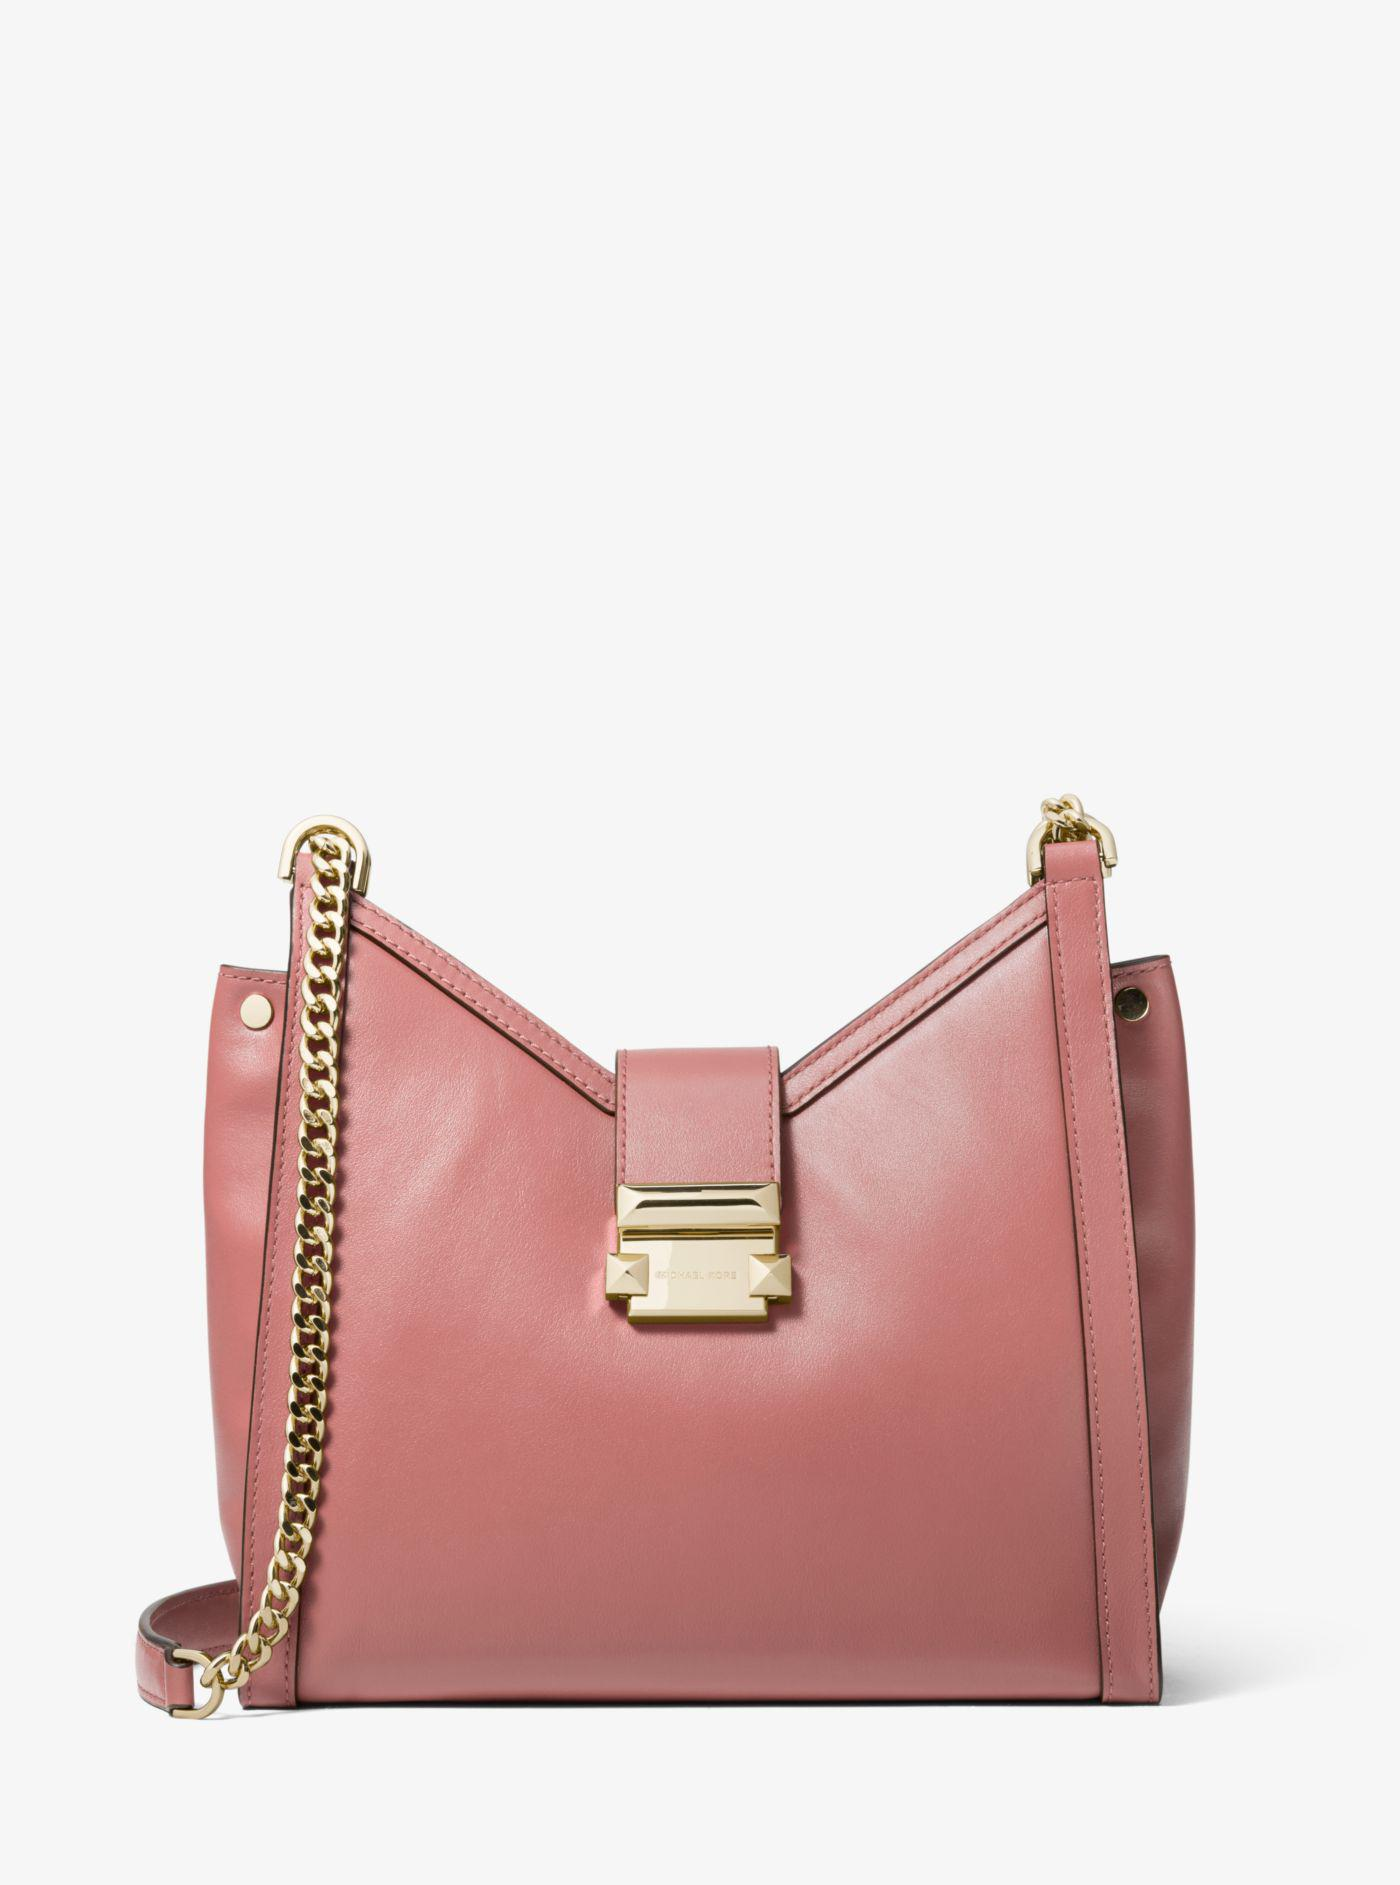 46bdec6b4c57 Michael Kors Whitney Small Leather Shoulder Bag in Pink - Lyst